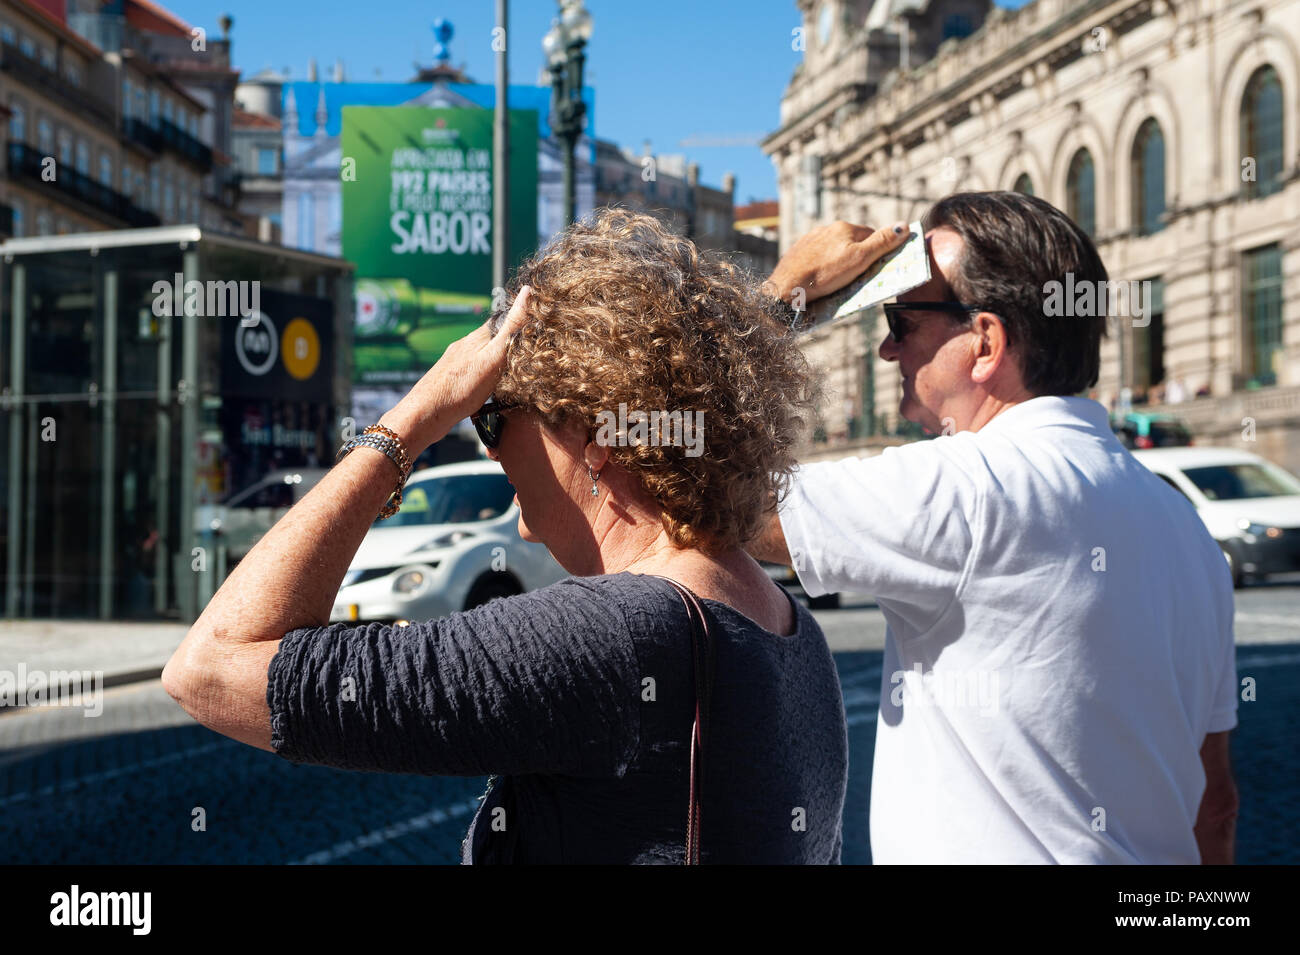 14.06.2018, Porto, Portugal, Europe - Two tourists are seen in Porto's city centre as they shield their faces from the sun. - Stock Image